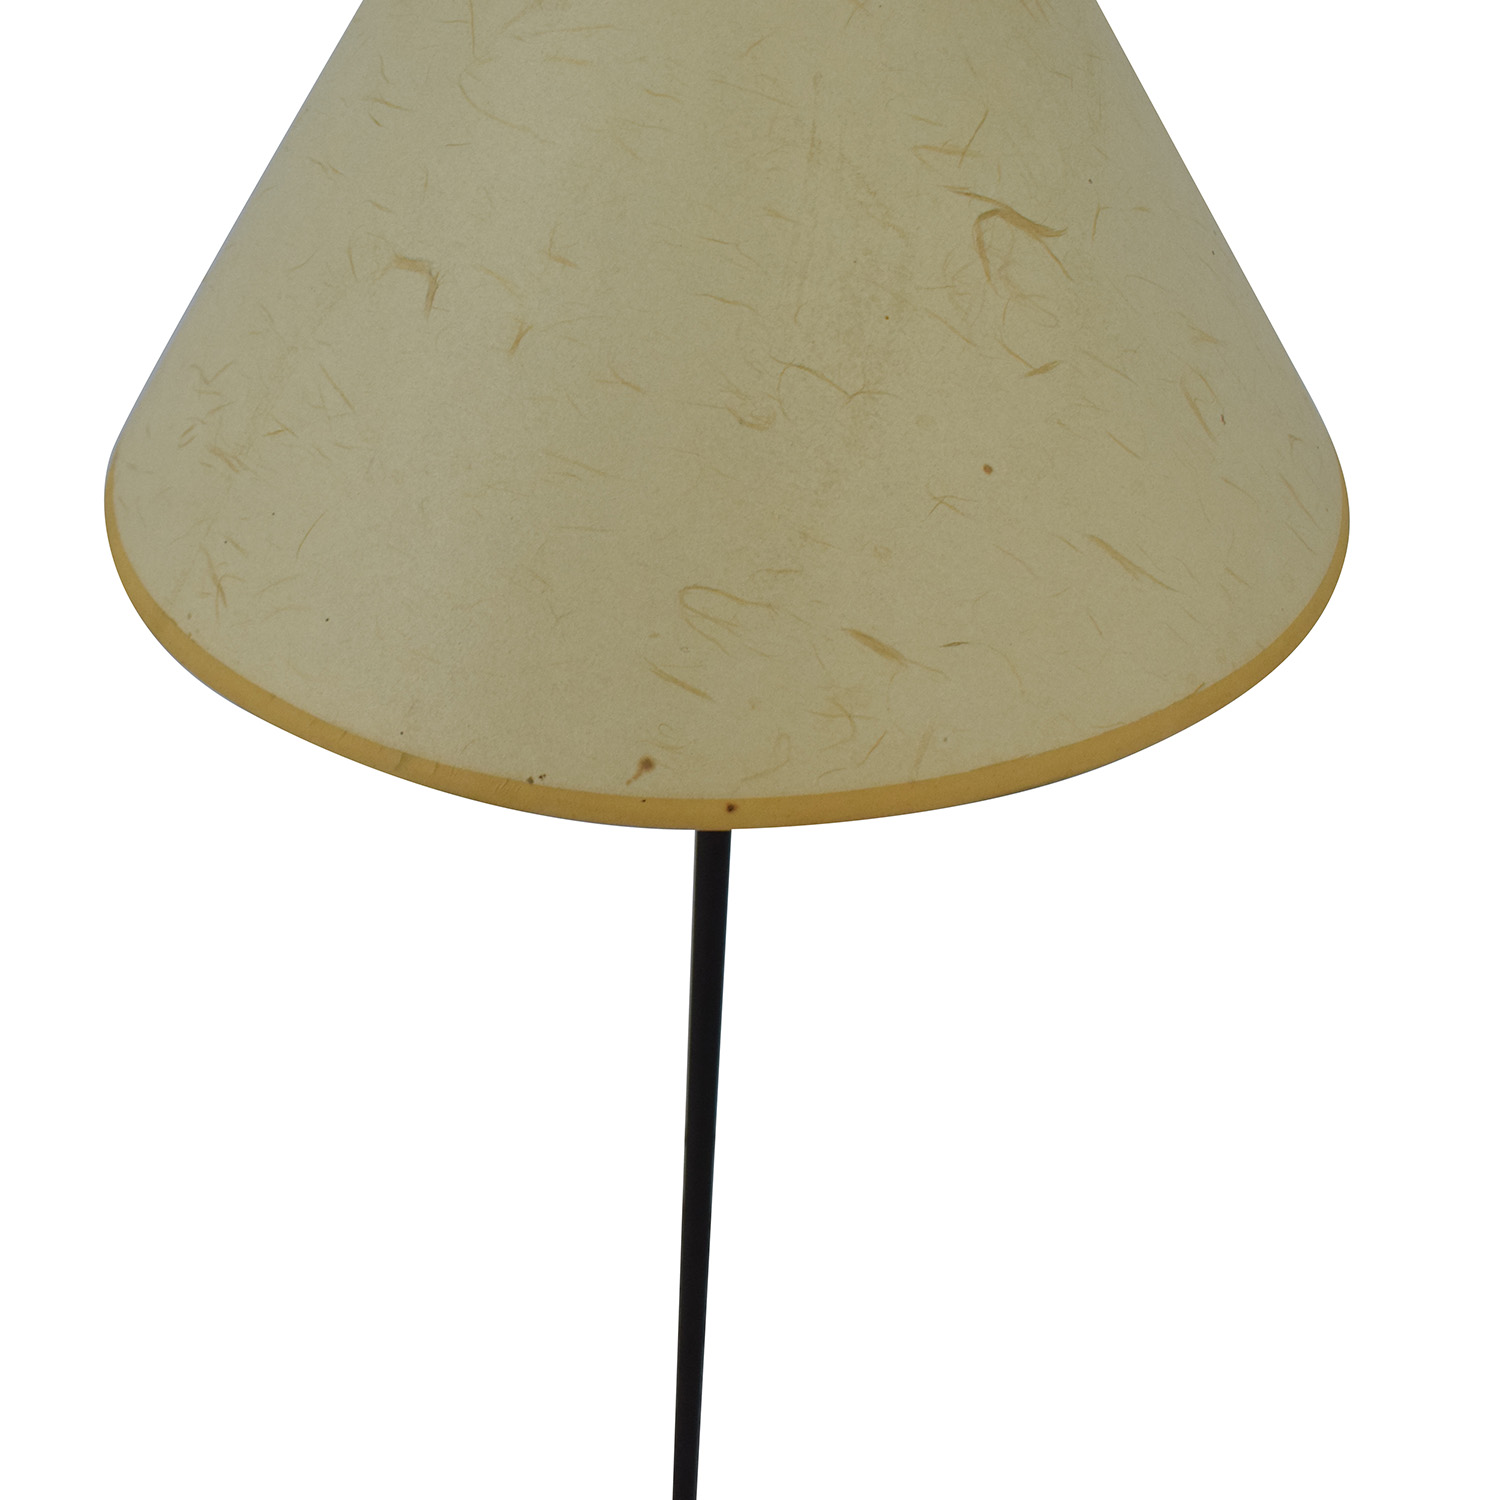 Pottery Barn Pottery Barn Floor Lamp brown